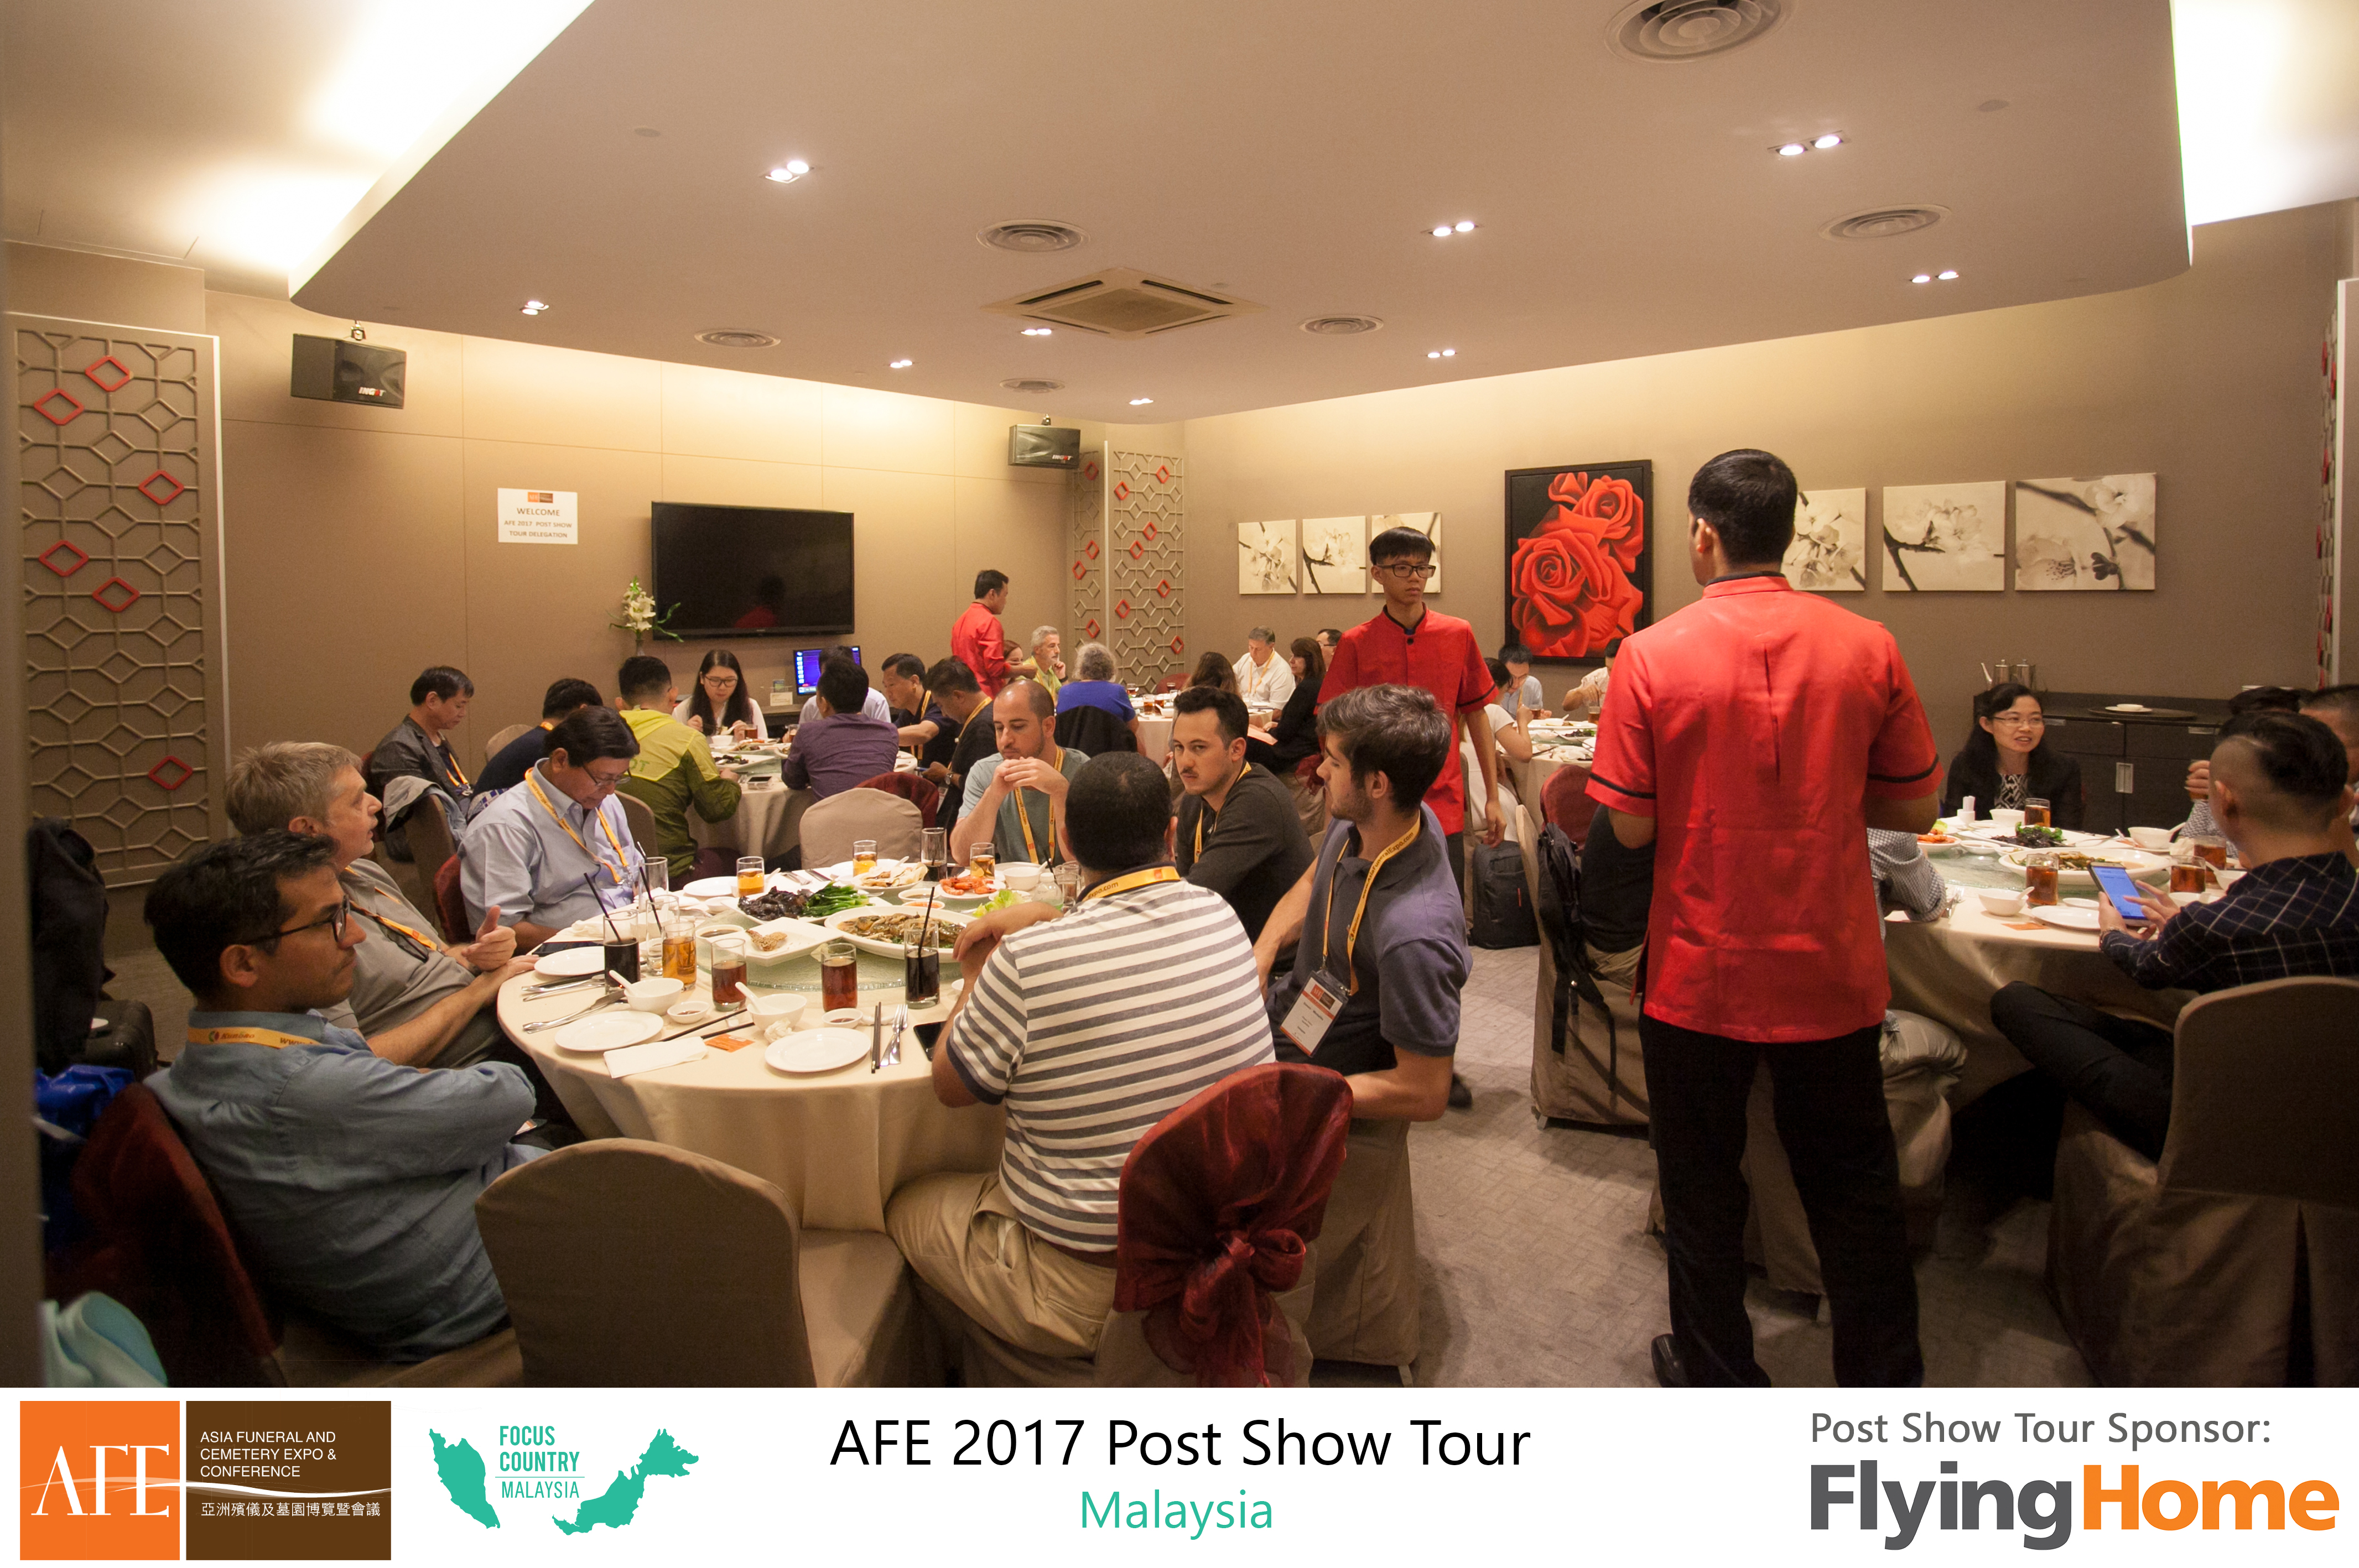 AFE Post Show Tour 2017 Day 1 - 20